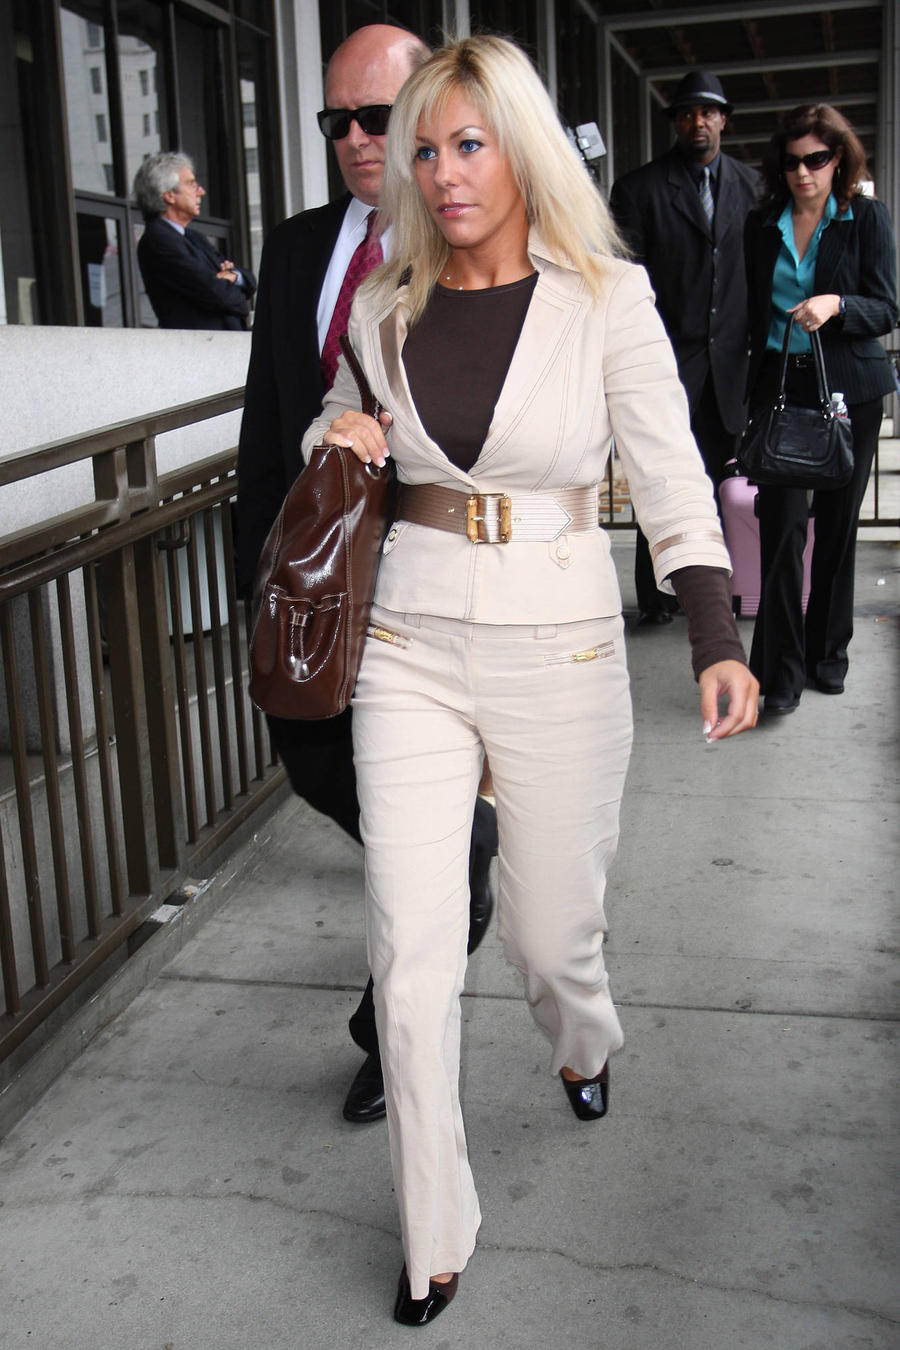 Phil Spector's Wife's Lawyer Disputes Spending Claims